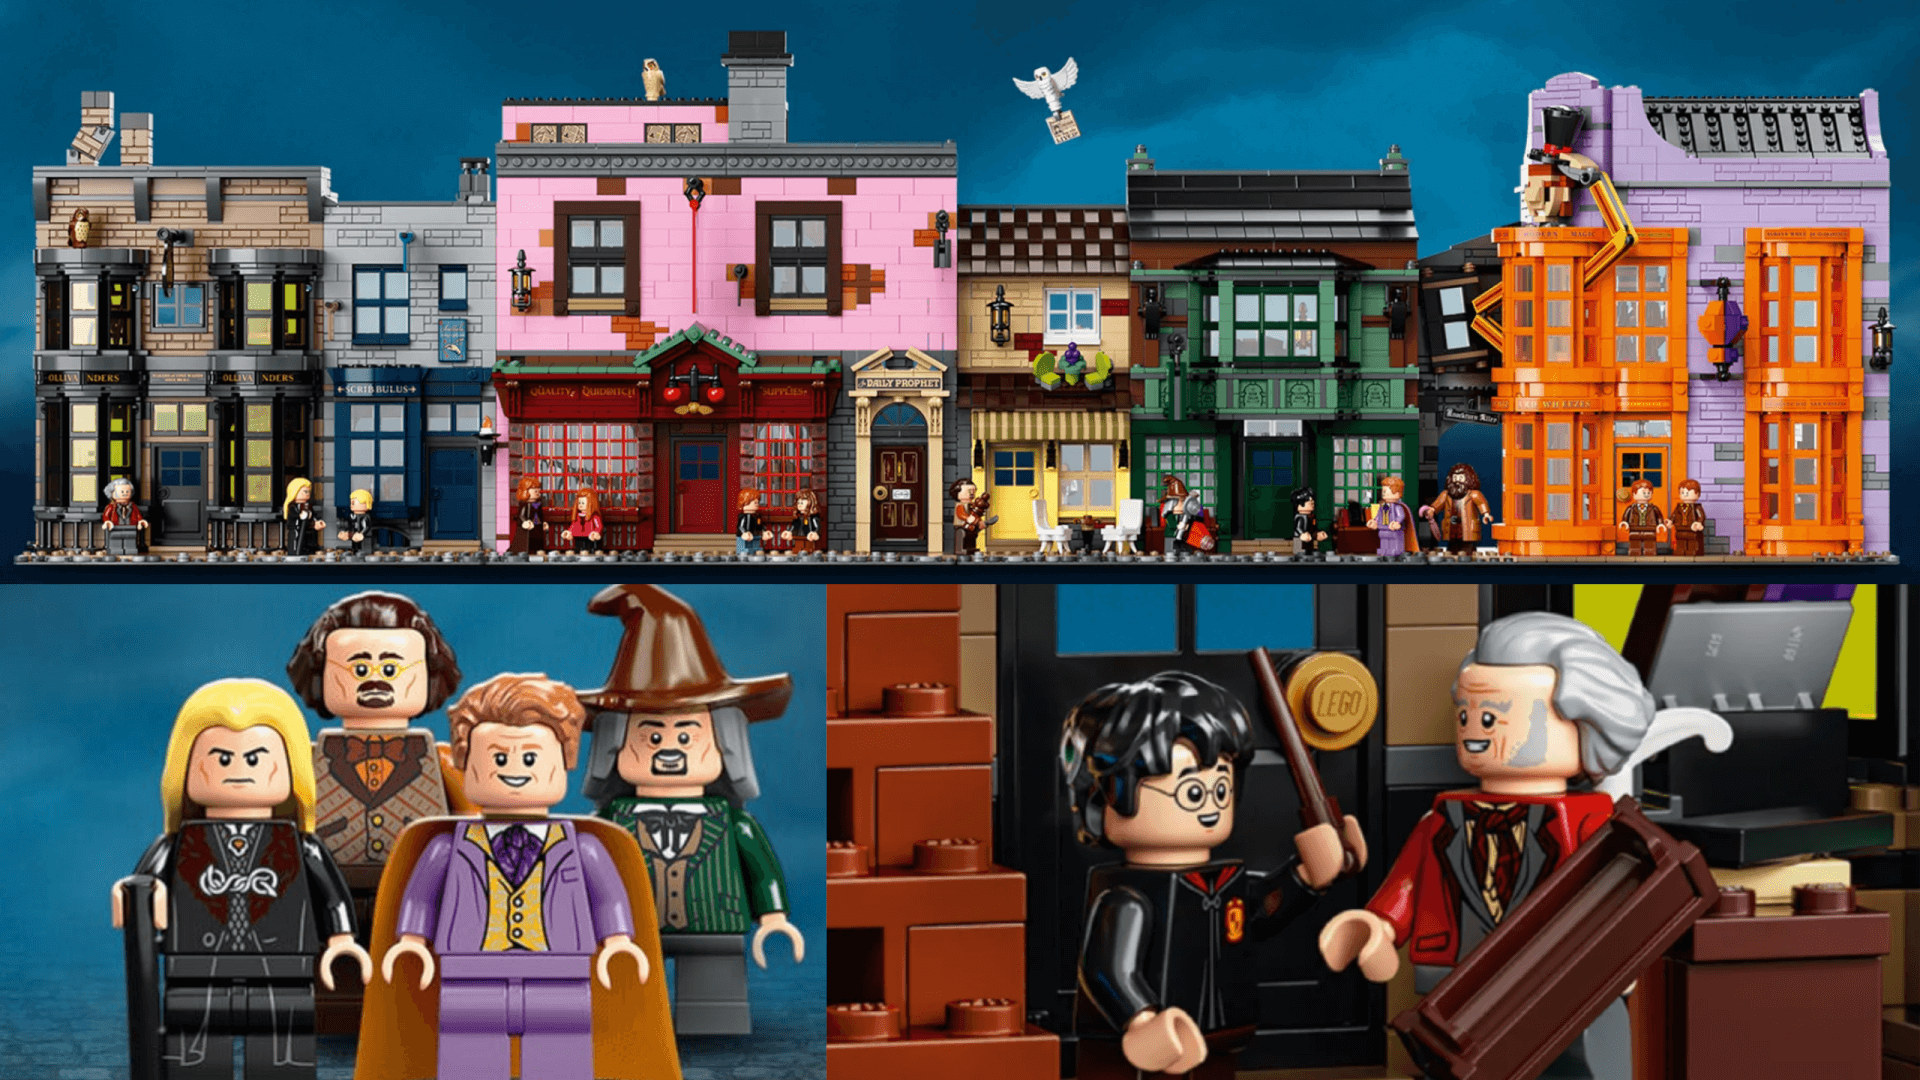 Magical New Diagon Alley Harry Potter Lego Set Emerges Tomorrow Inside The Magic Harry Potter Lego Sets Lego Harry Potter Harry Potter Diagon Alley